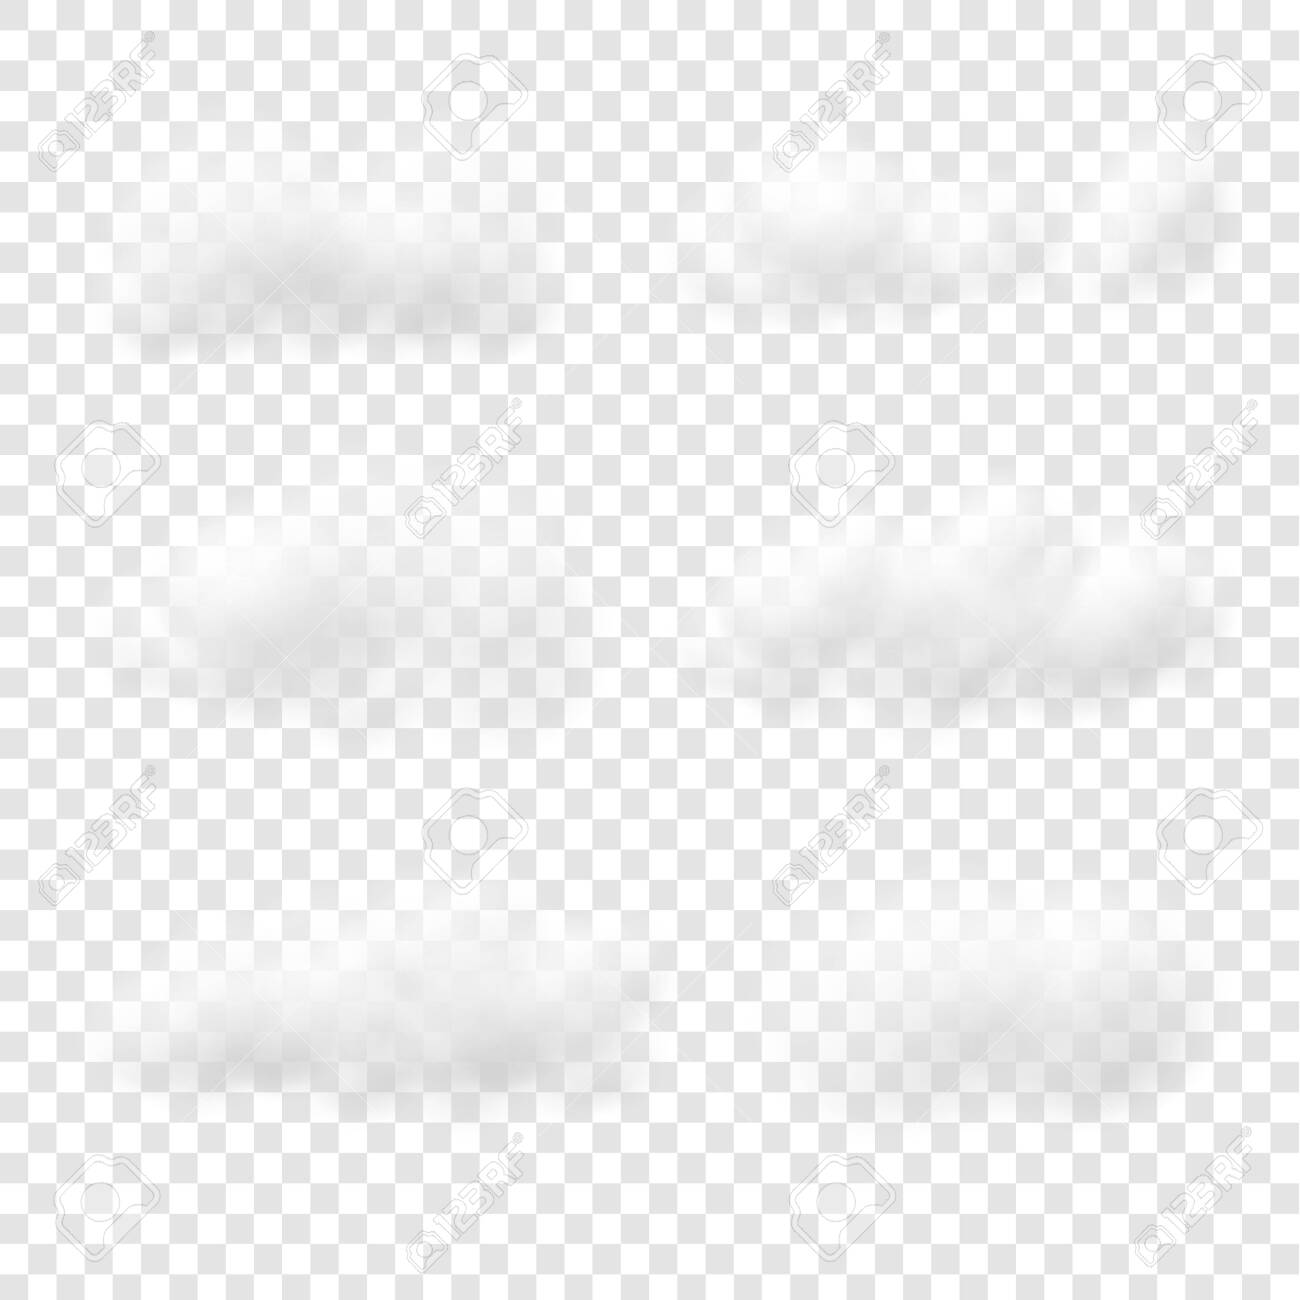 Realistic white cloud vectors isolated on transparent background, Fluffy cubes like white cotton wool - 138448427